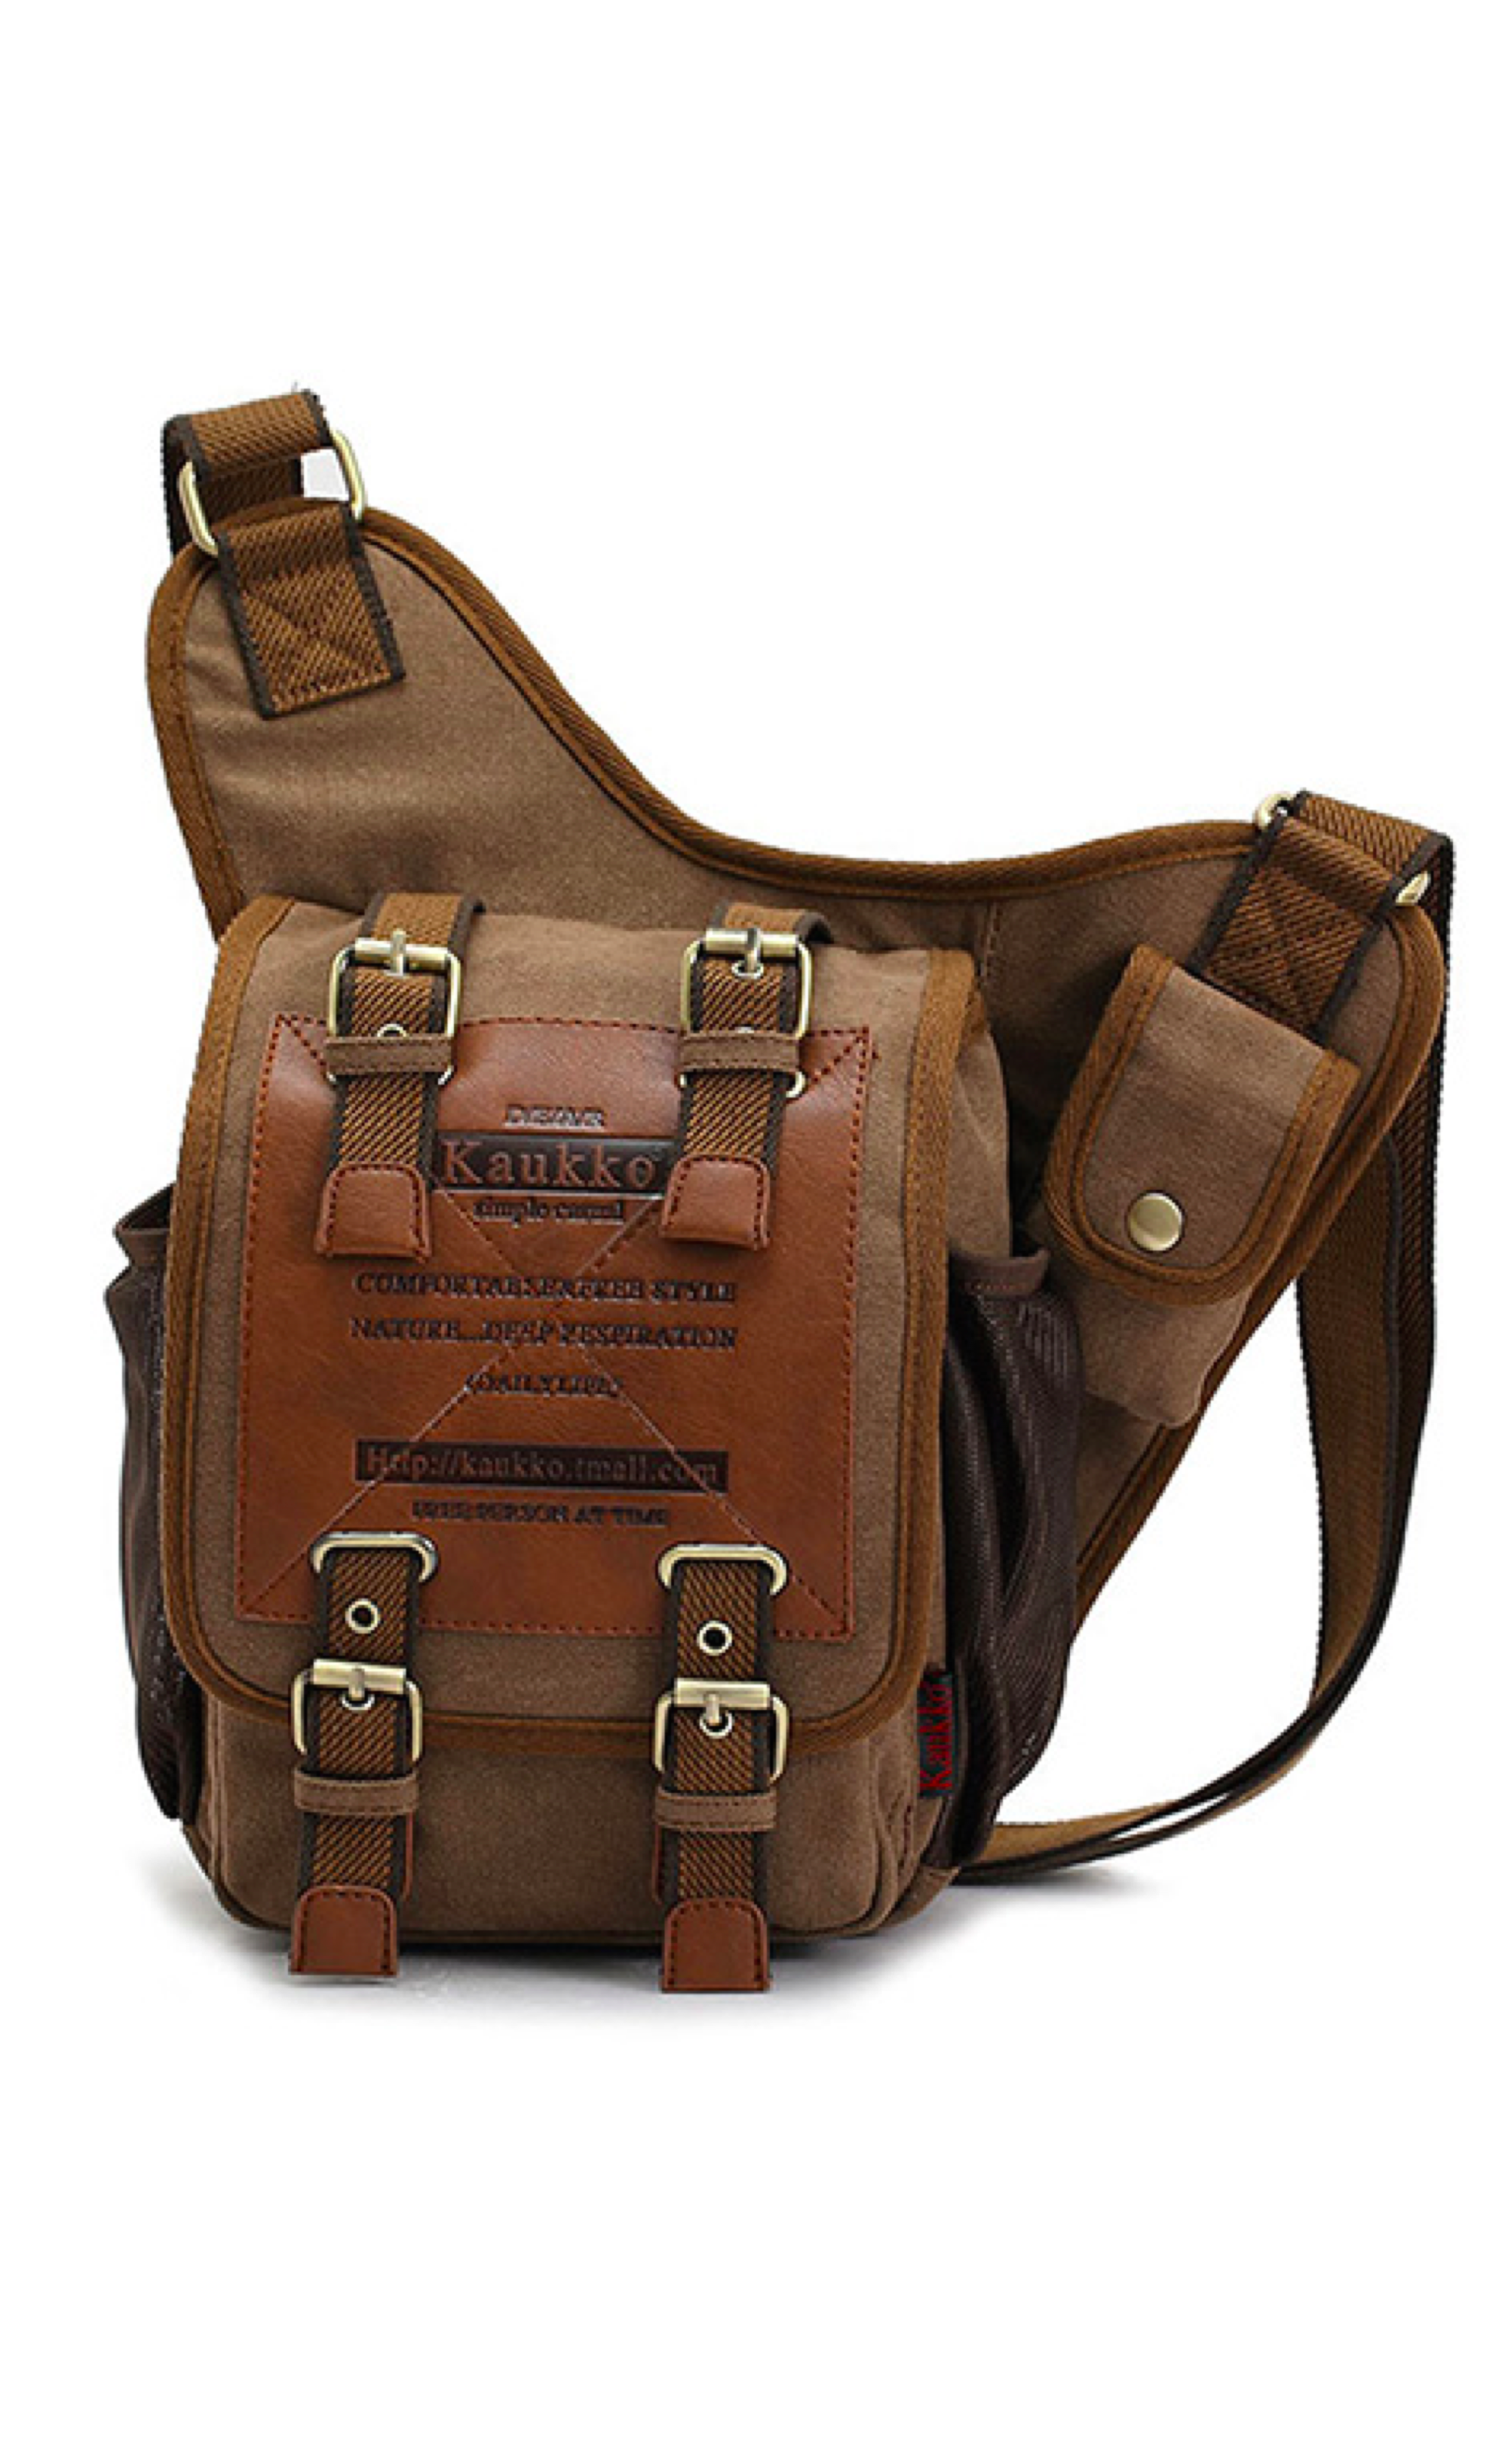 ccd6574d602f This men s vintage canvas military crossbody messenger bag has a military-inspired  design and features multiple compartments and pockets for carrying ...